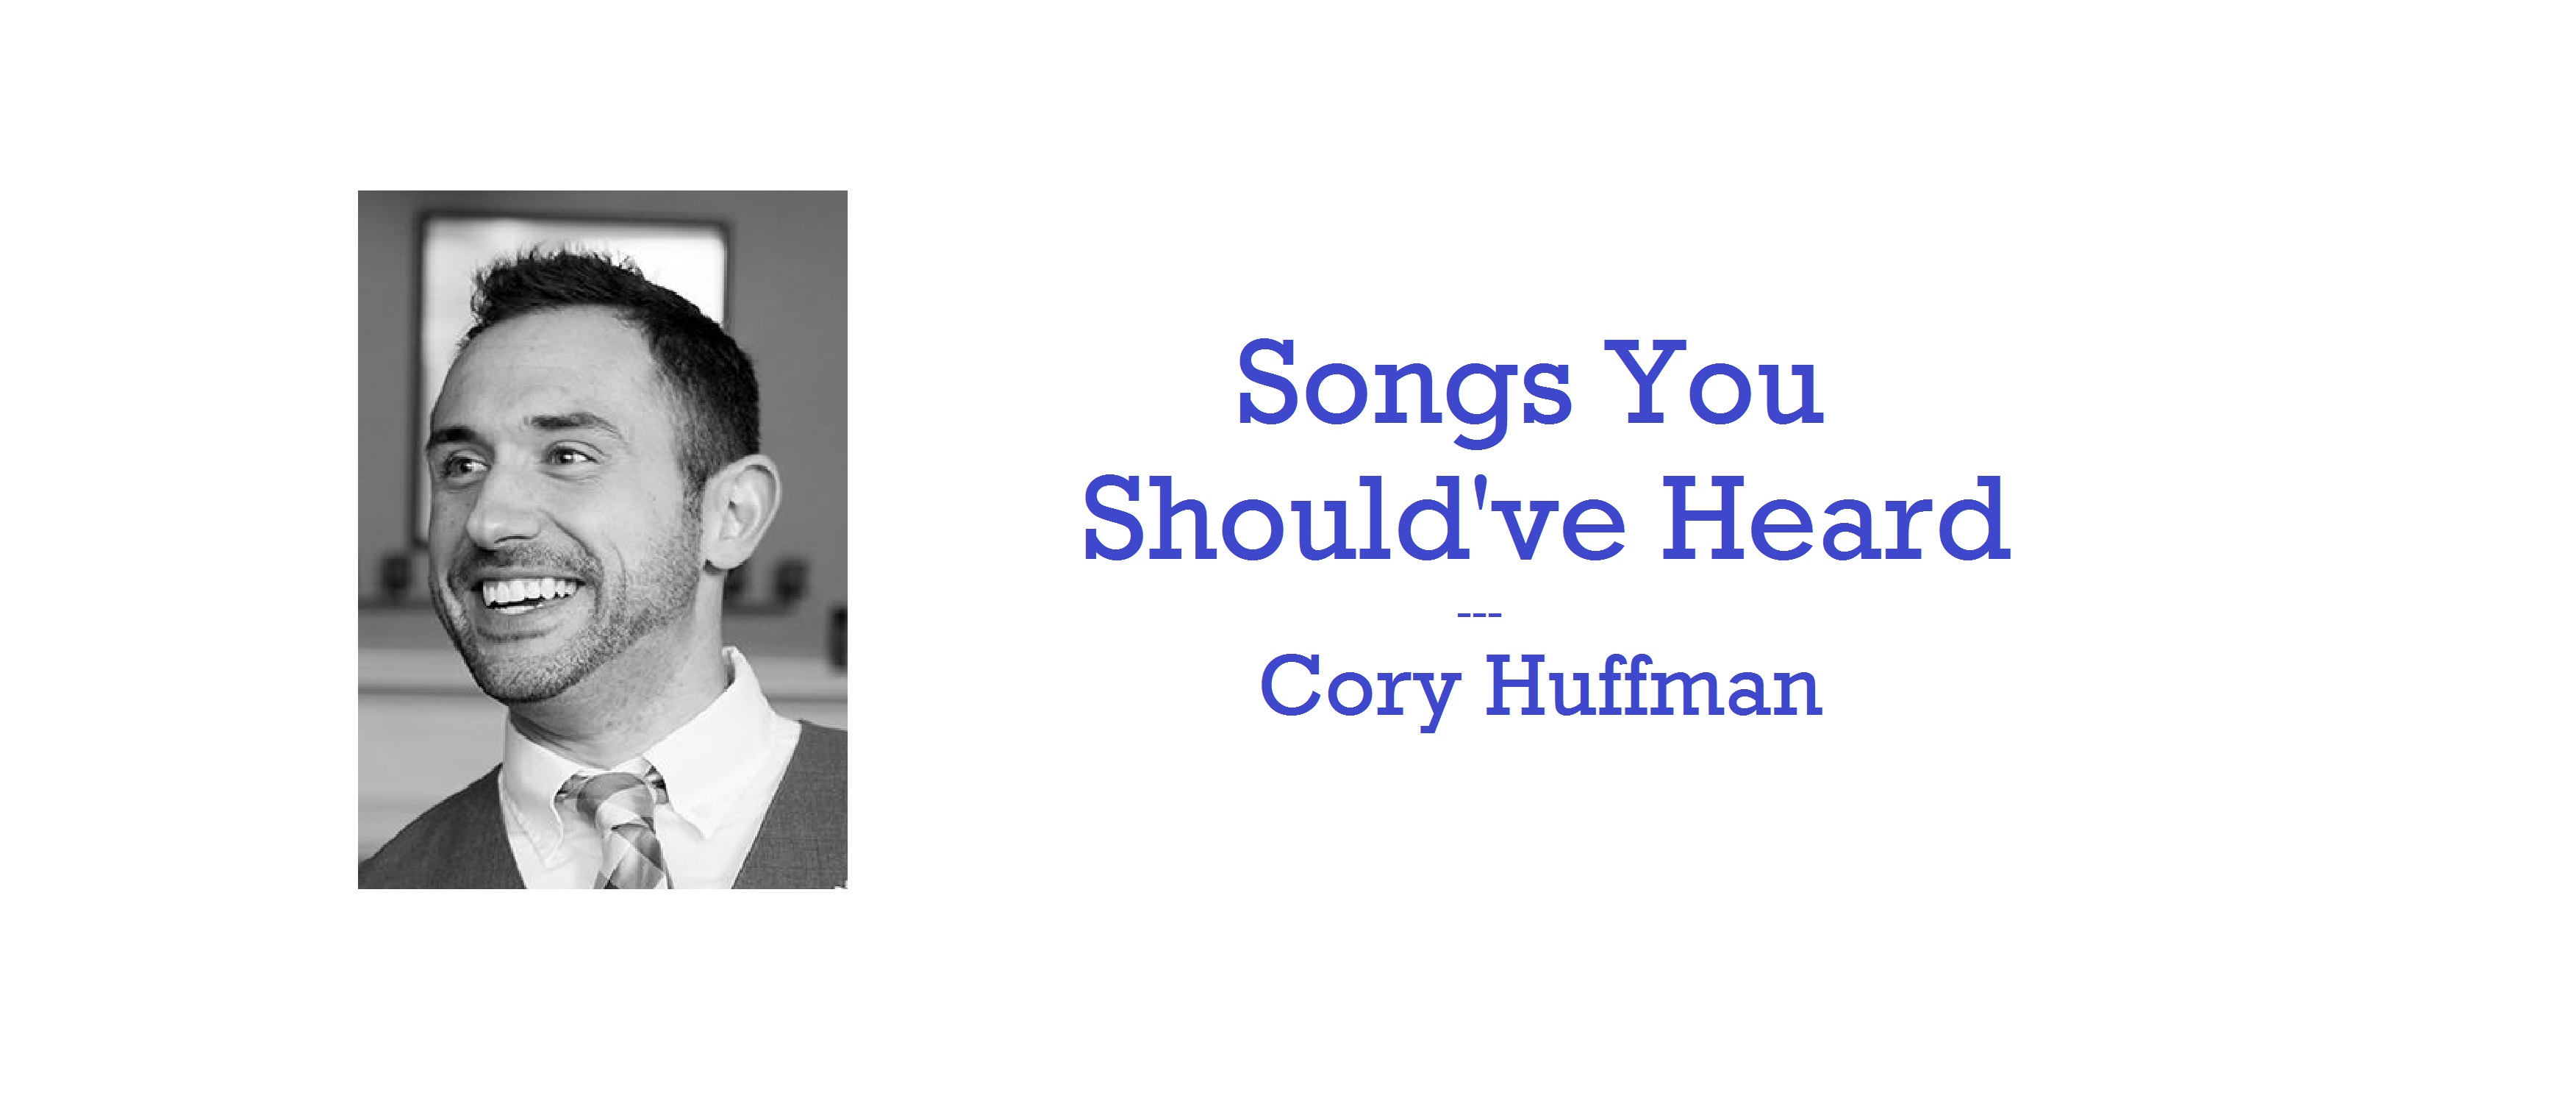 Cory Huffman returns with another analysis of a song you should have heard.